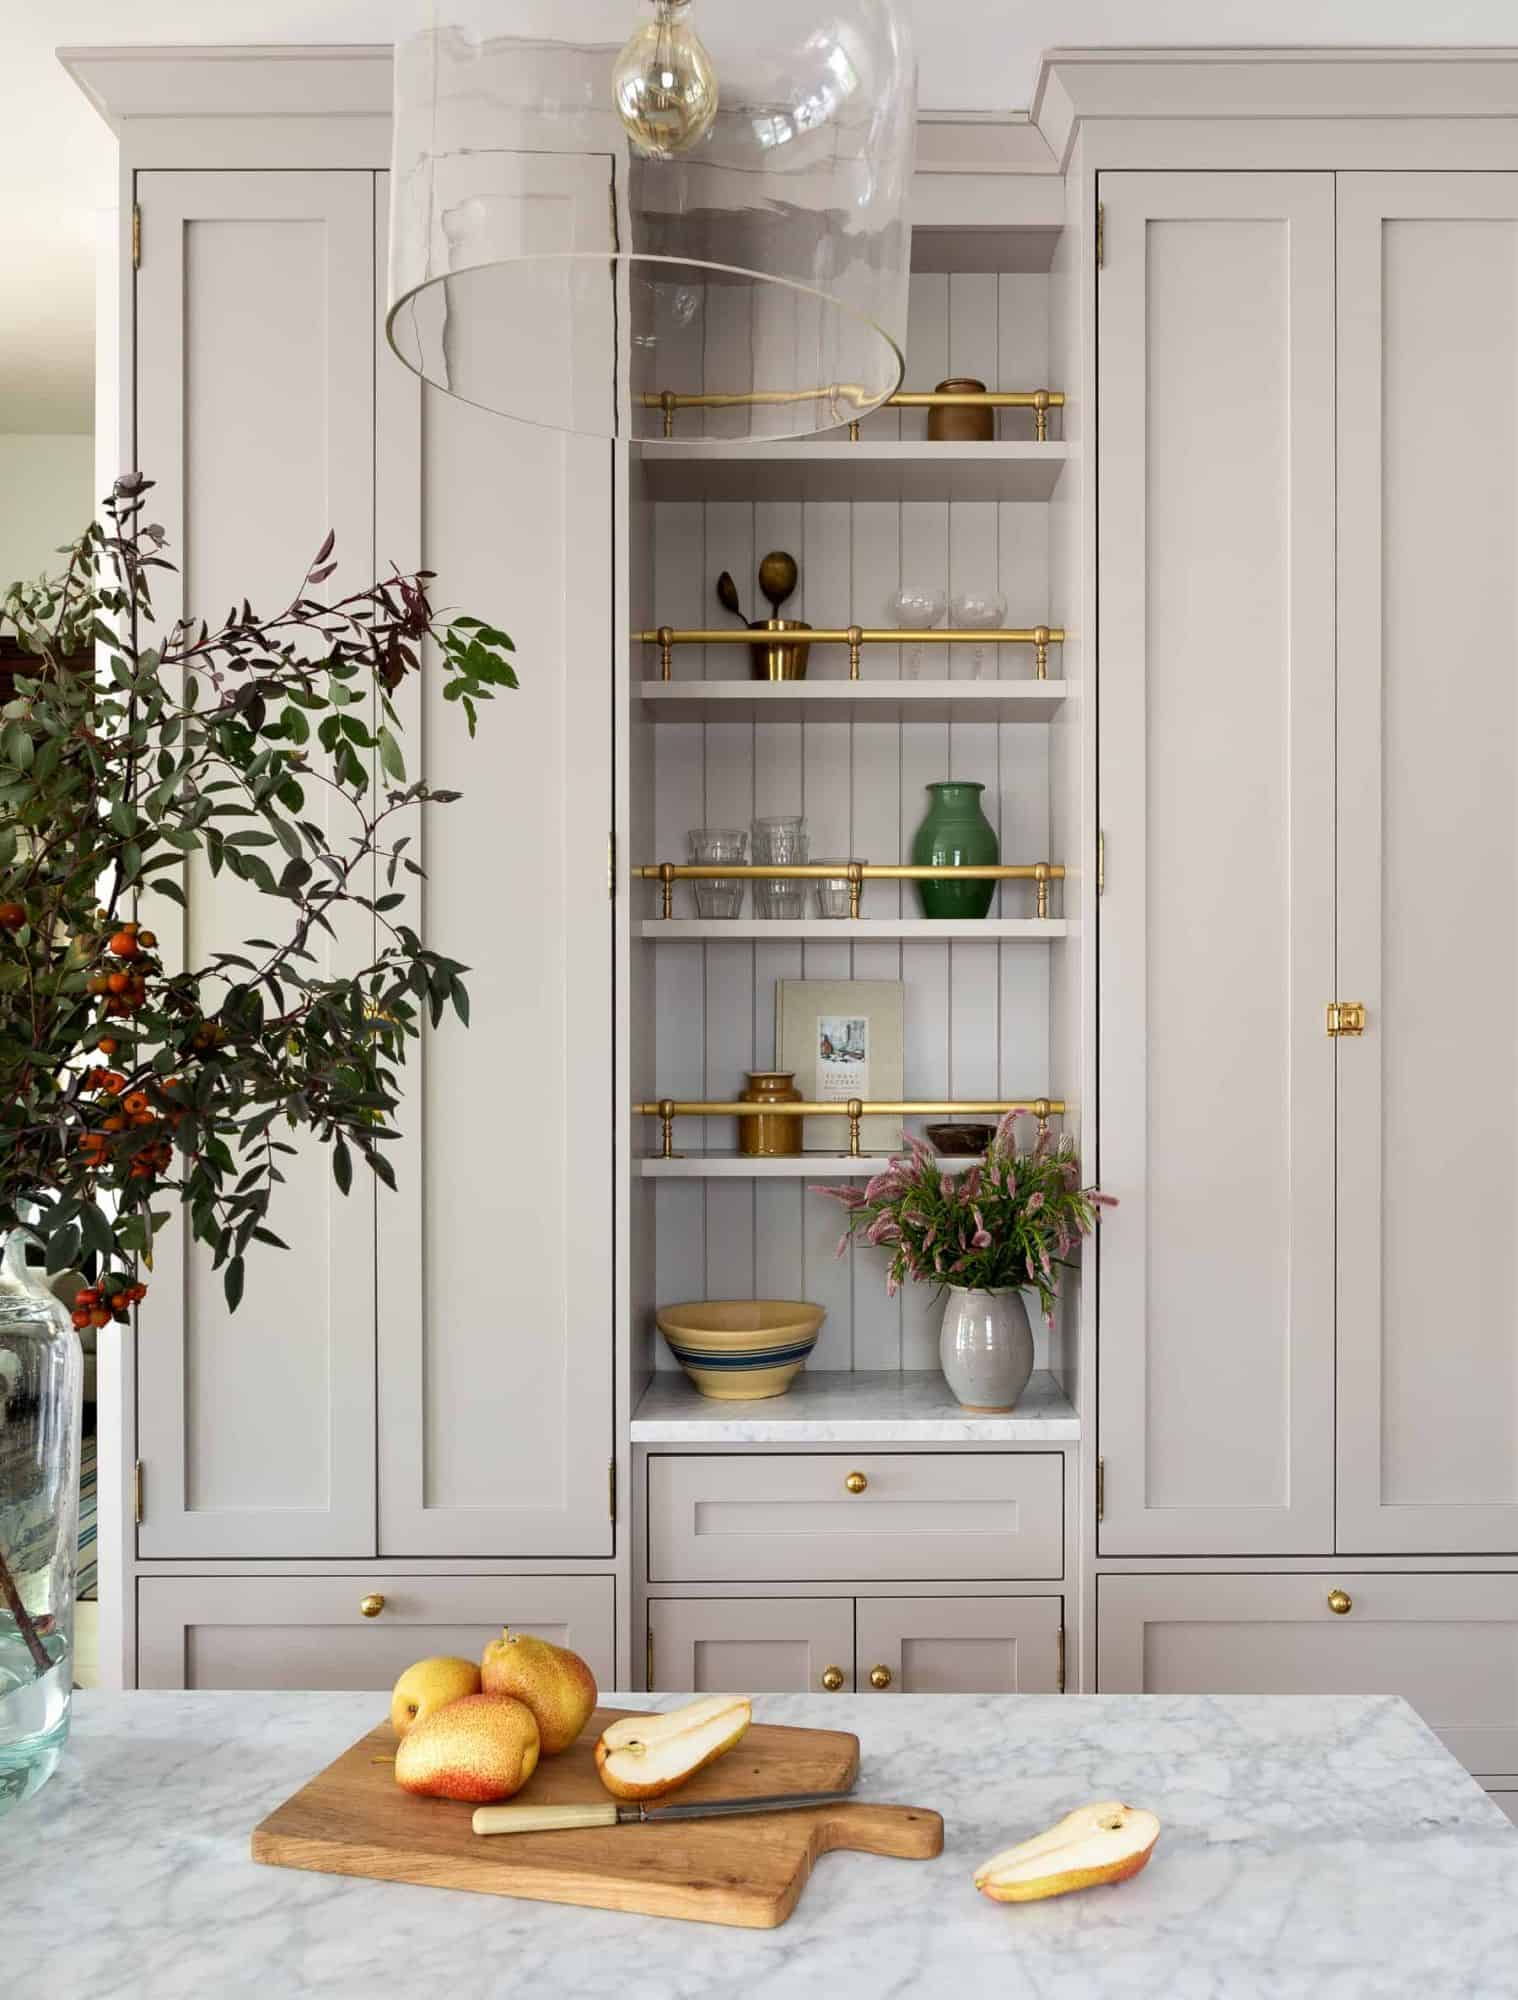 Emily Henderson How Add Charm To A Kitchen 22